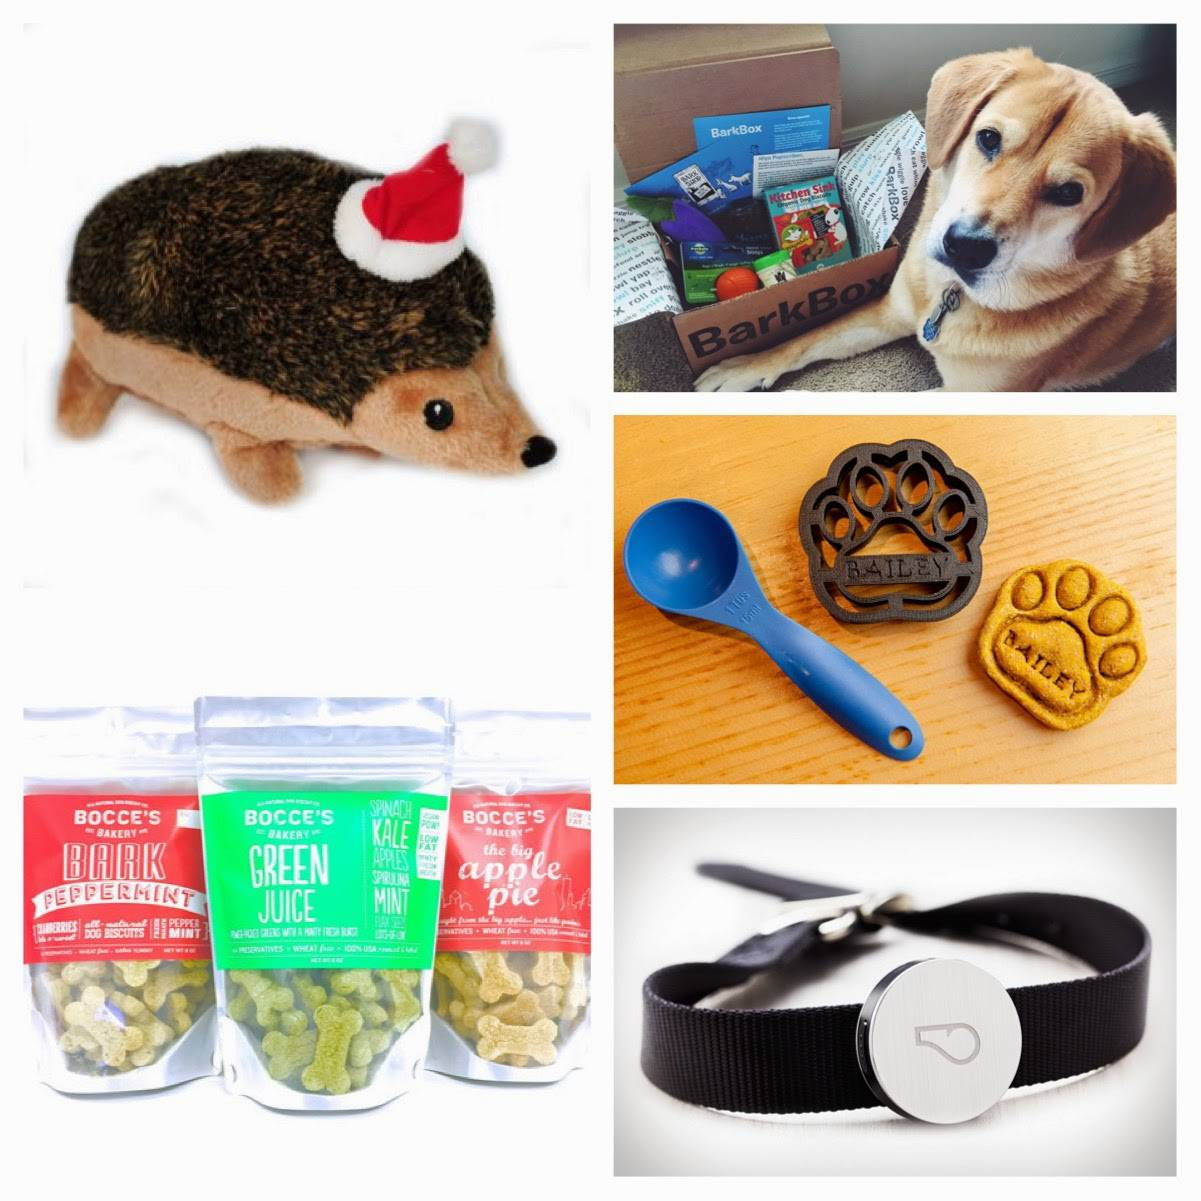 Christmas Gift Guide 2014 5 Picks For Dogs Small Towns City Lights